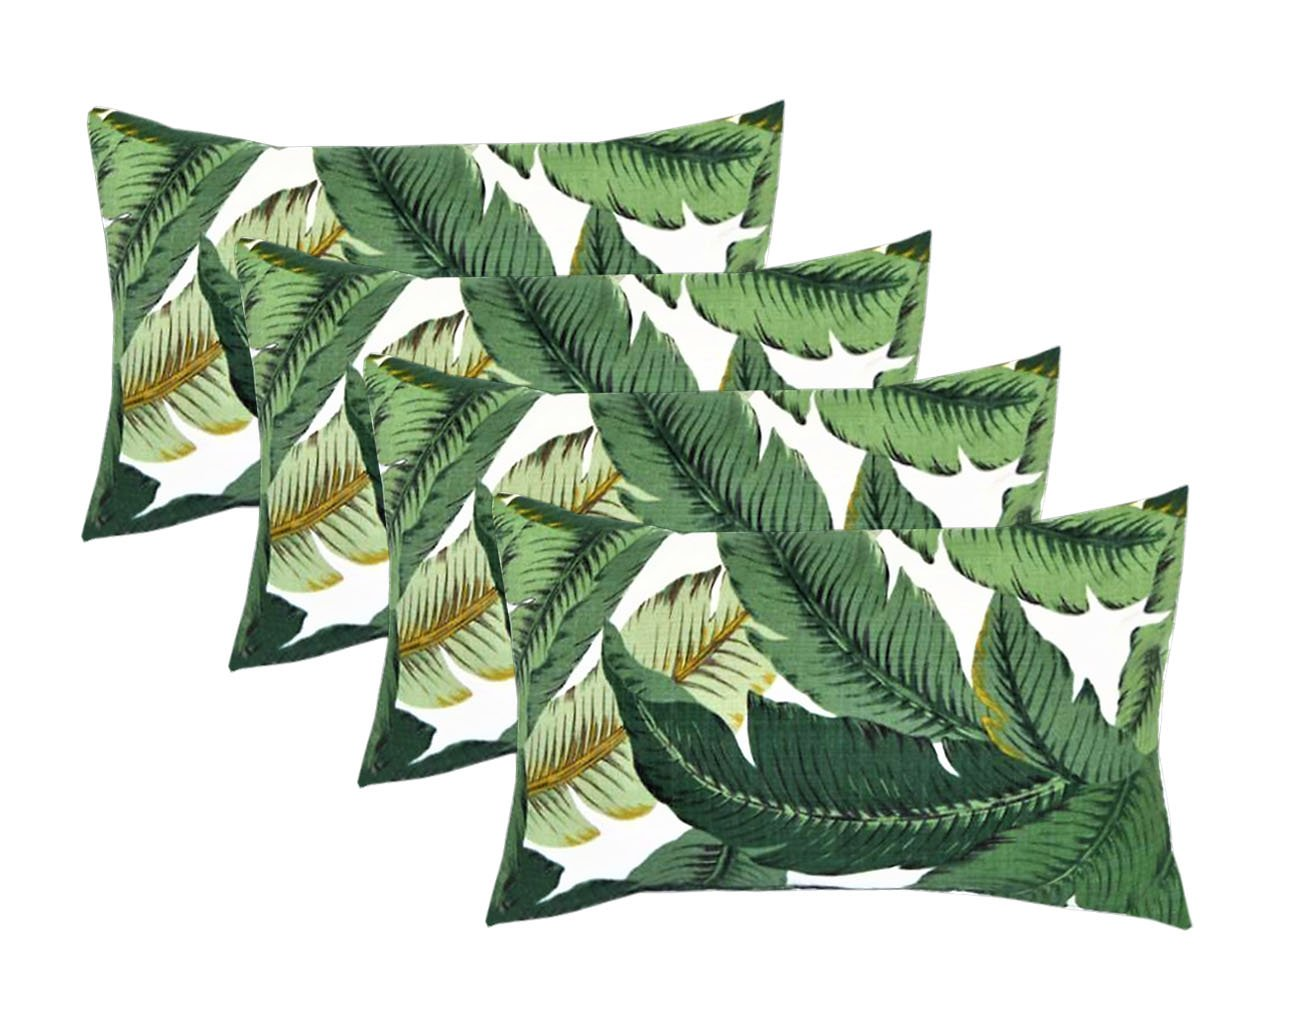 Set of 4 Indoor / Outdoor Decorative Lumbar / Rectangle Pillows - Tommy Bahama Swaying Palms - Aloe - Green Tropical Palm Leaf